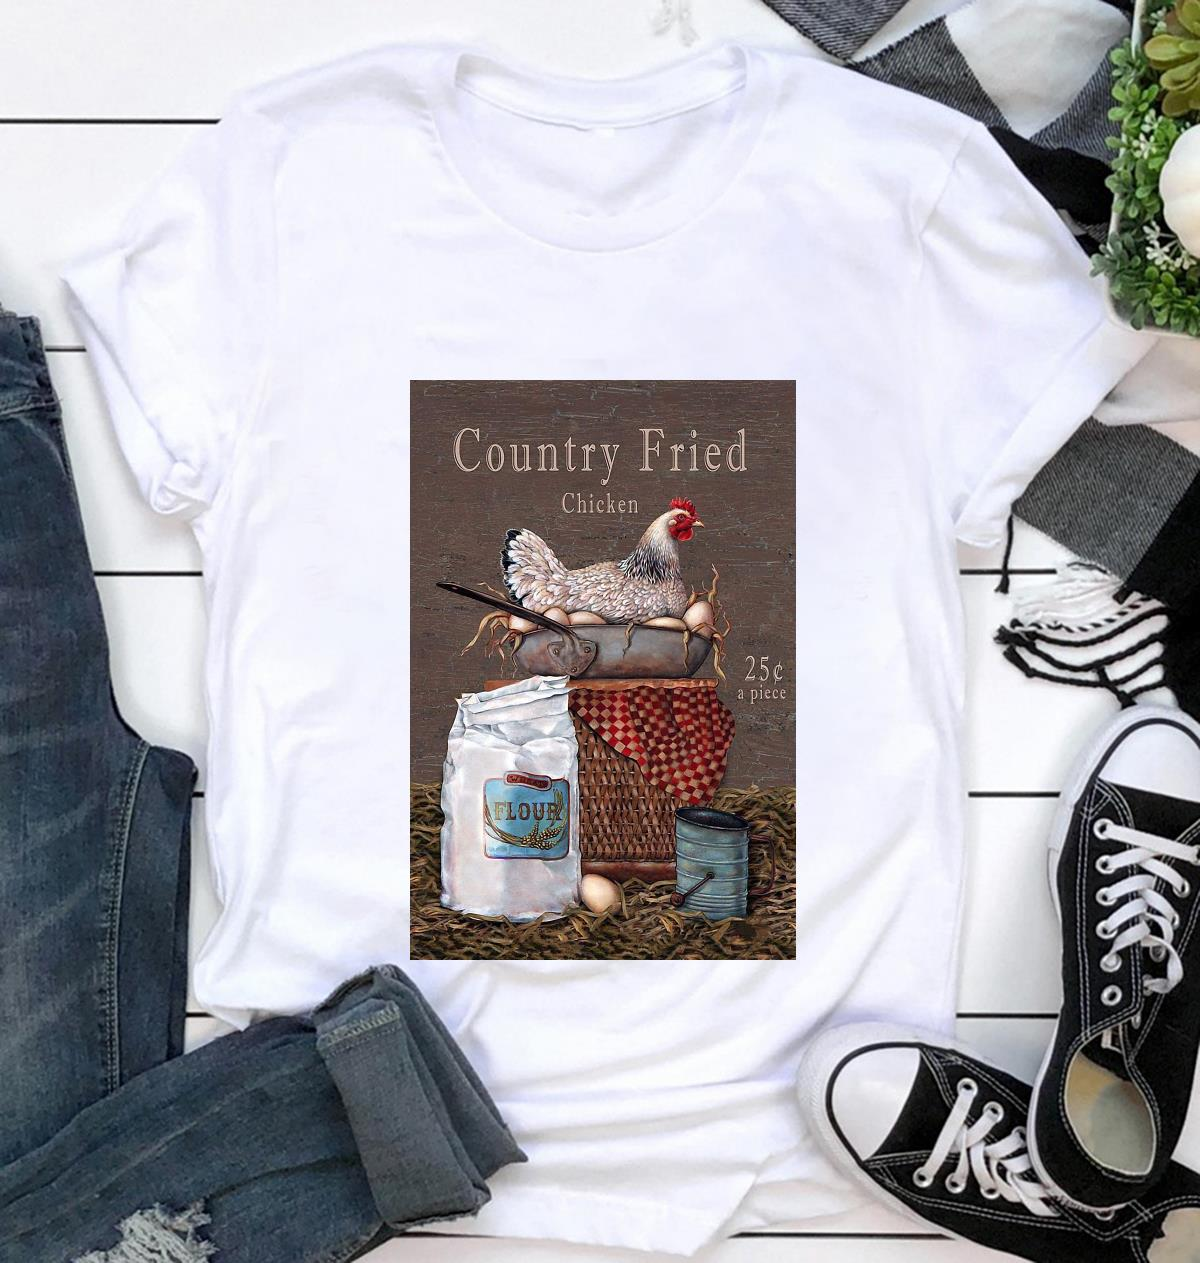 Country Fried Chicken vertical poster t-shirt